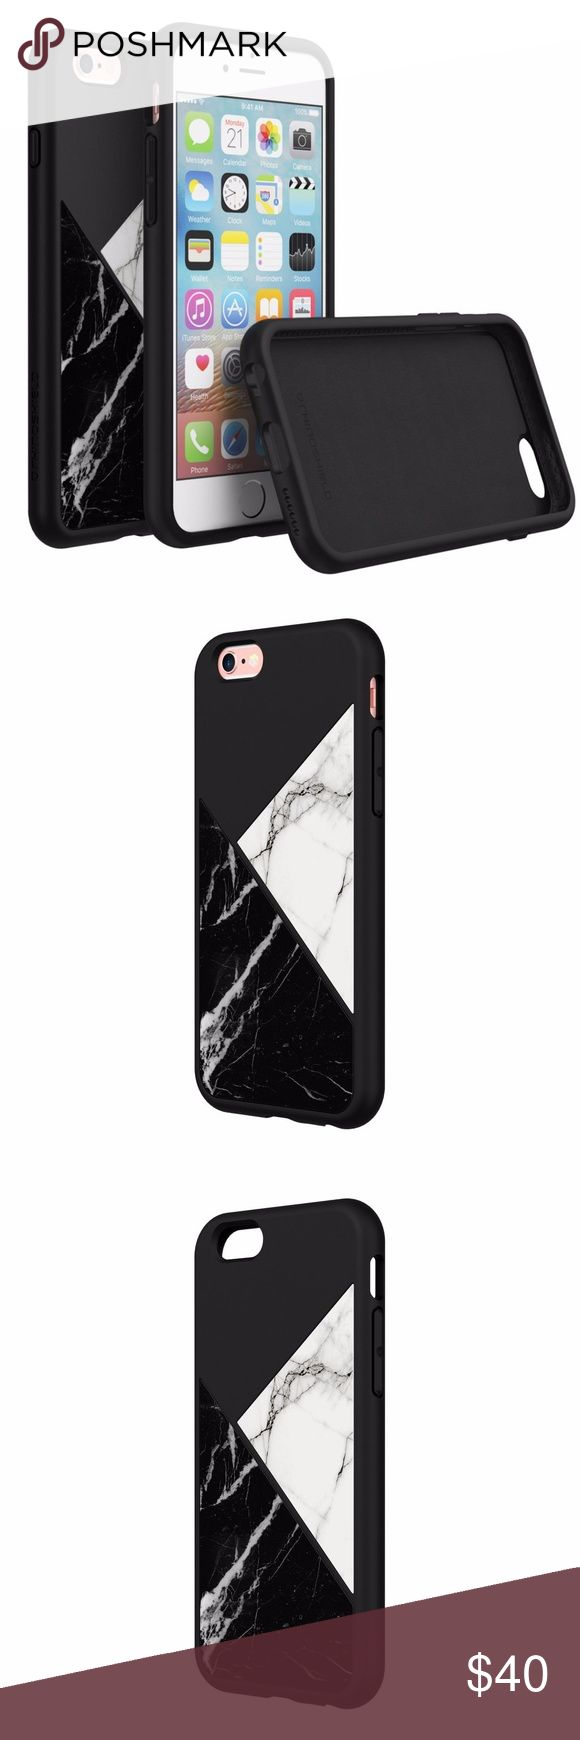 SolidSuit Marble Finish iPhone 6/6s Case SolidSuit Marble blends high quality materials to create the first premium phone case with marble finish and advanced drop protection. The beauty of marble tile without the disadvantage of adding weight. This ultra slim case has combined impact protection of 11 feet with minimalistic look. Rhinoshield Accessories Phone Cases